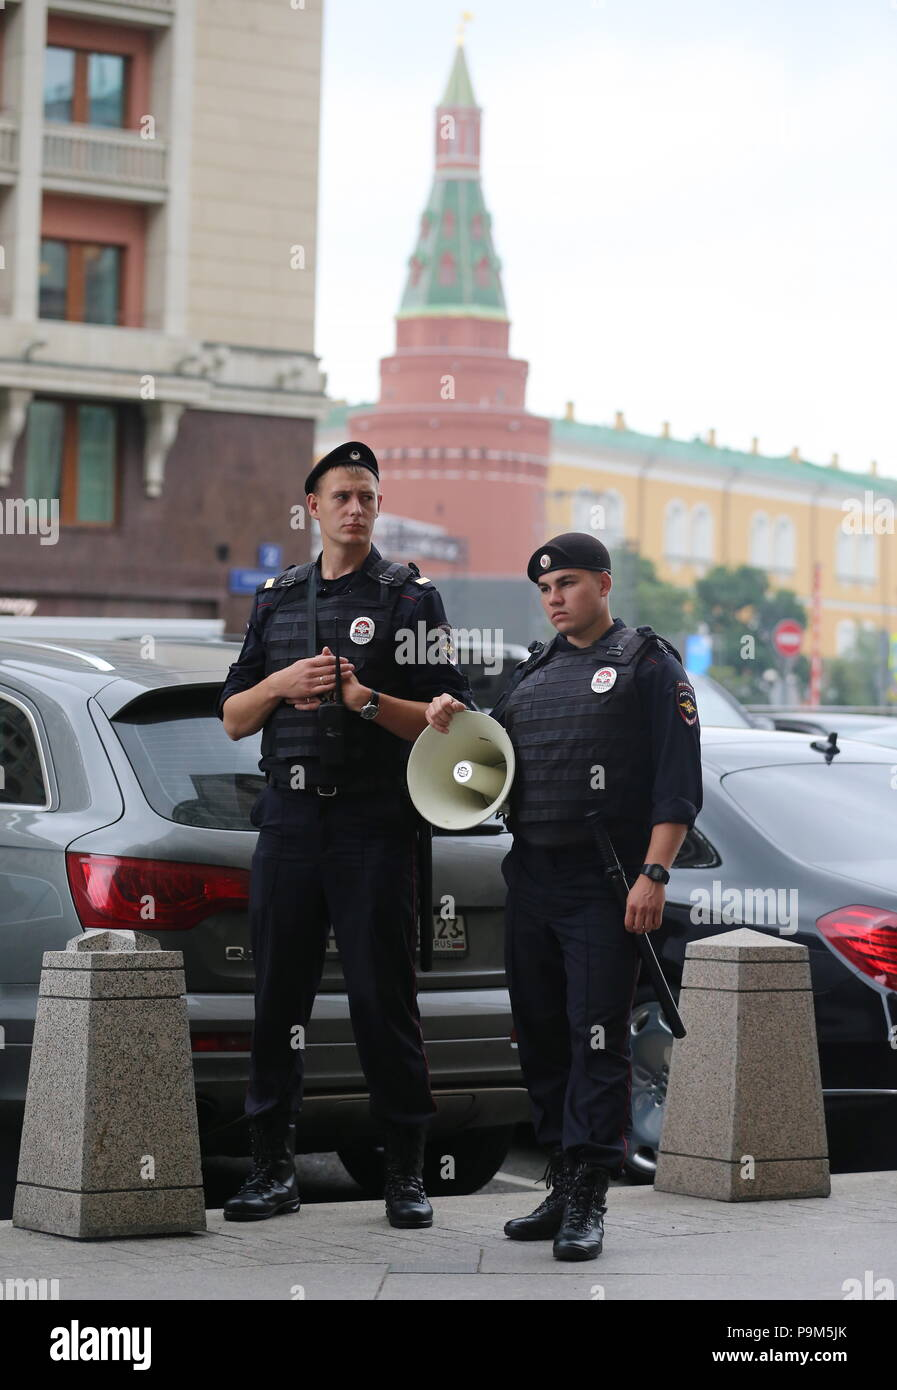 Moscow, Russia. 19th July, 2018. MOSCOW, RUSSIA - JULY 19, 2018: Police officers during a rally outside the building of the Russian State Duma ahead of the first reading of a draft law on raising the retirement age from 60 to 65 for men, and from 55 to 63 for women over a 15-year period. Vladimir Gerdo/TASS Credit: ITAR-TASS News Agency/Alamy Live News - Stock Image